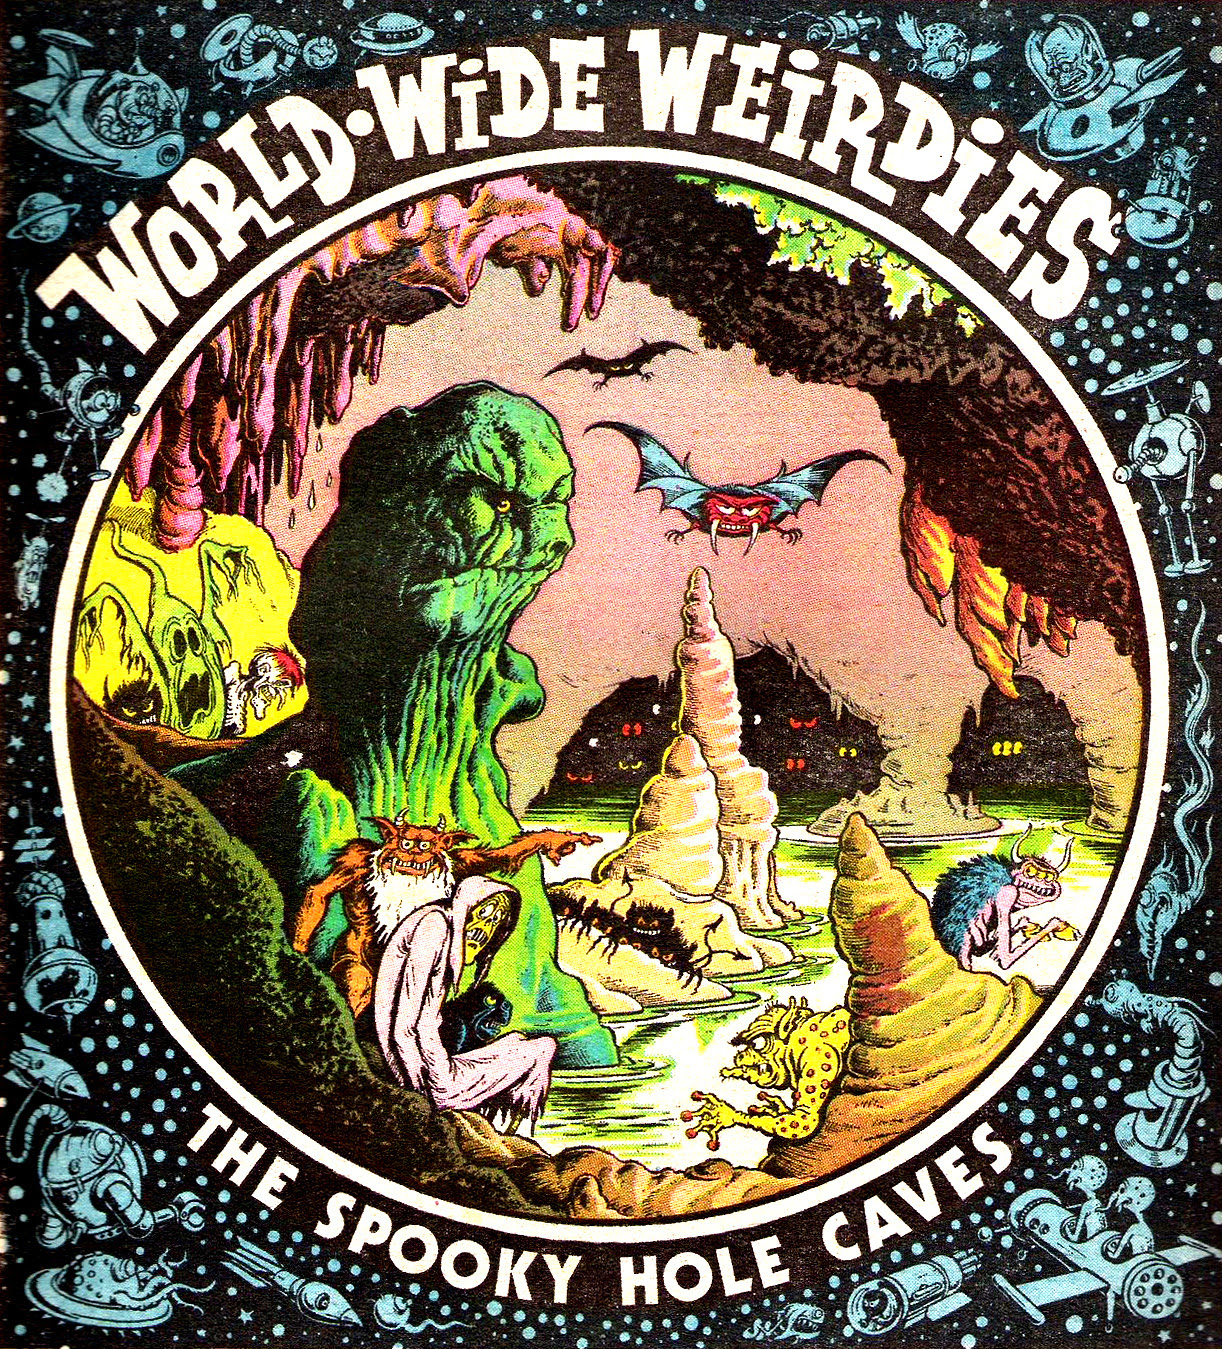 Ken Reid - World Wide Weirdies 54